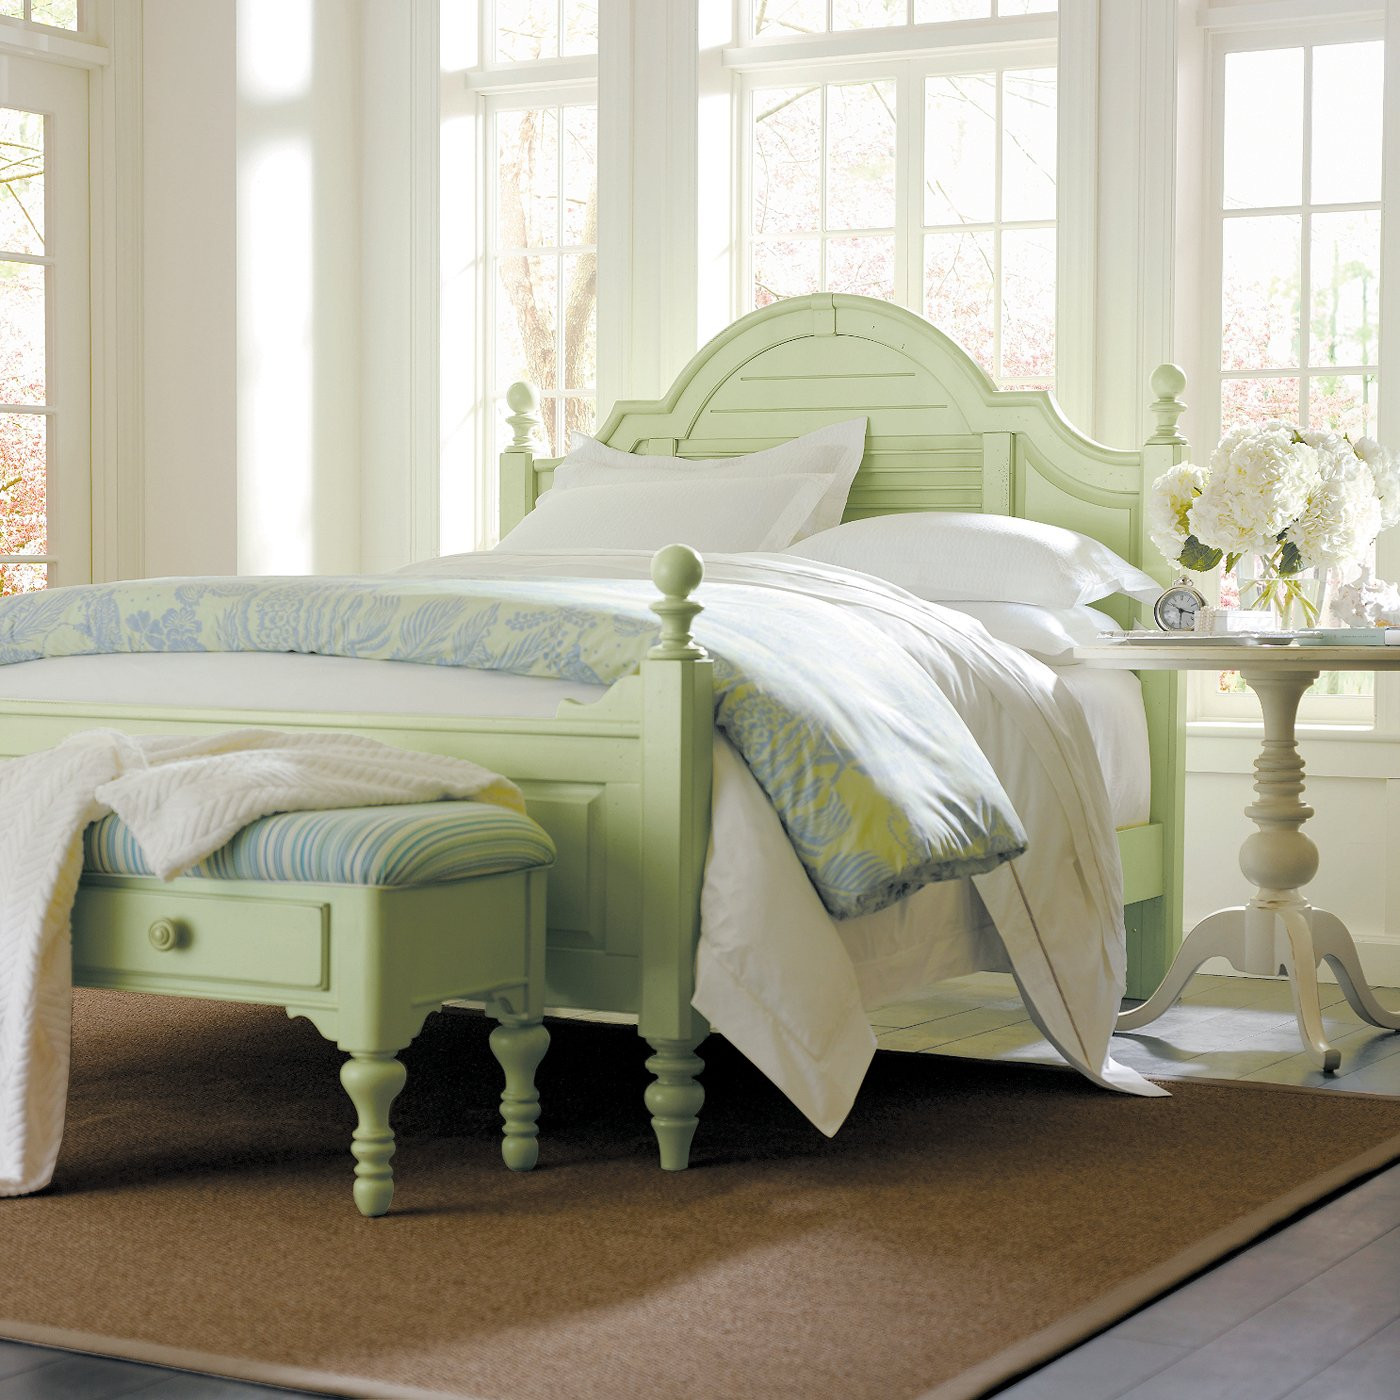 Best ideas about Coastal Bedroom Furniture . Save or Pin Stanley Furniture 829 SBT Coastal Living Summerhouse Now.